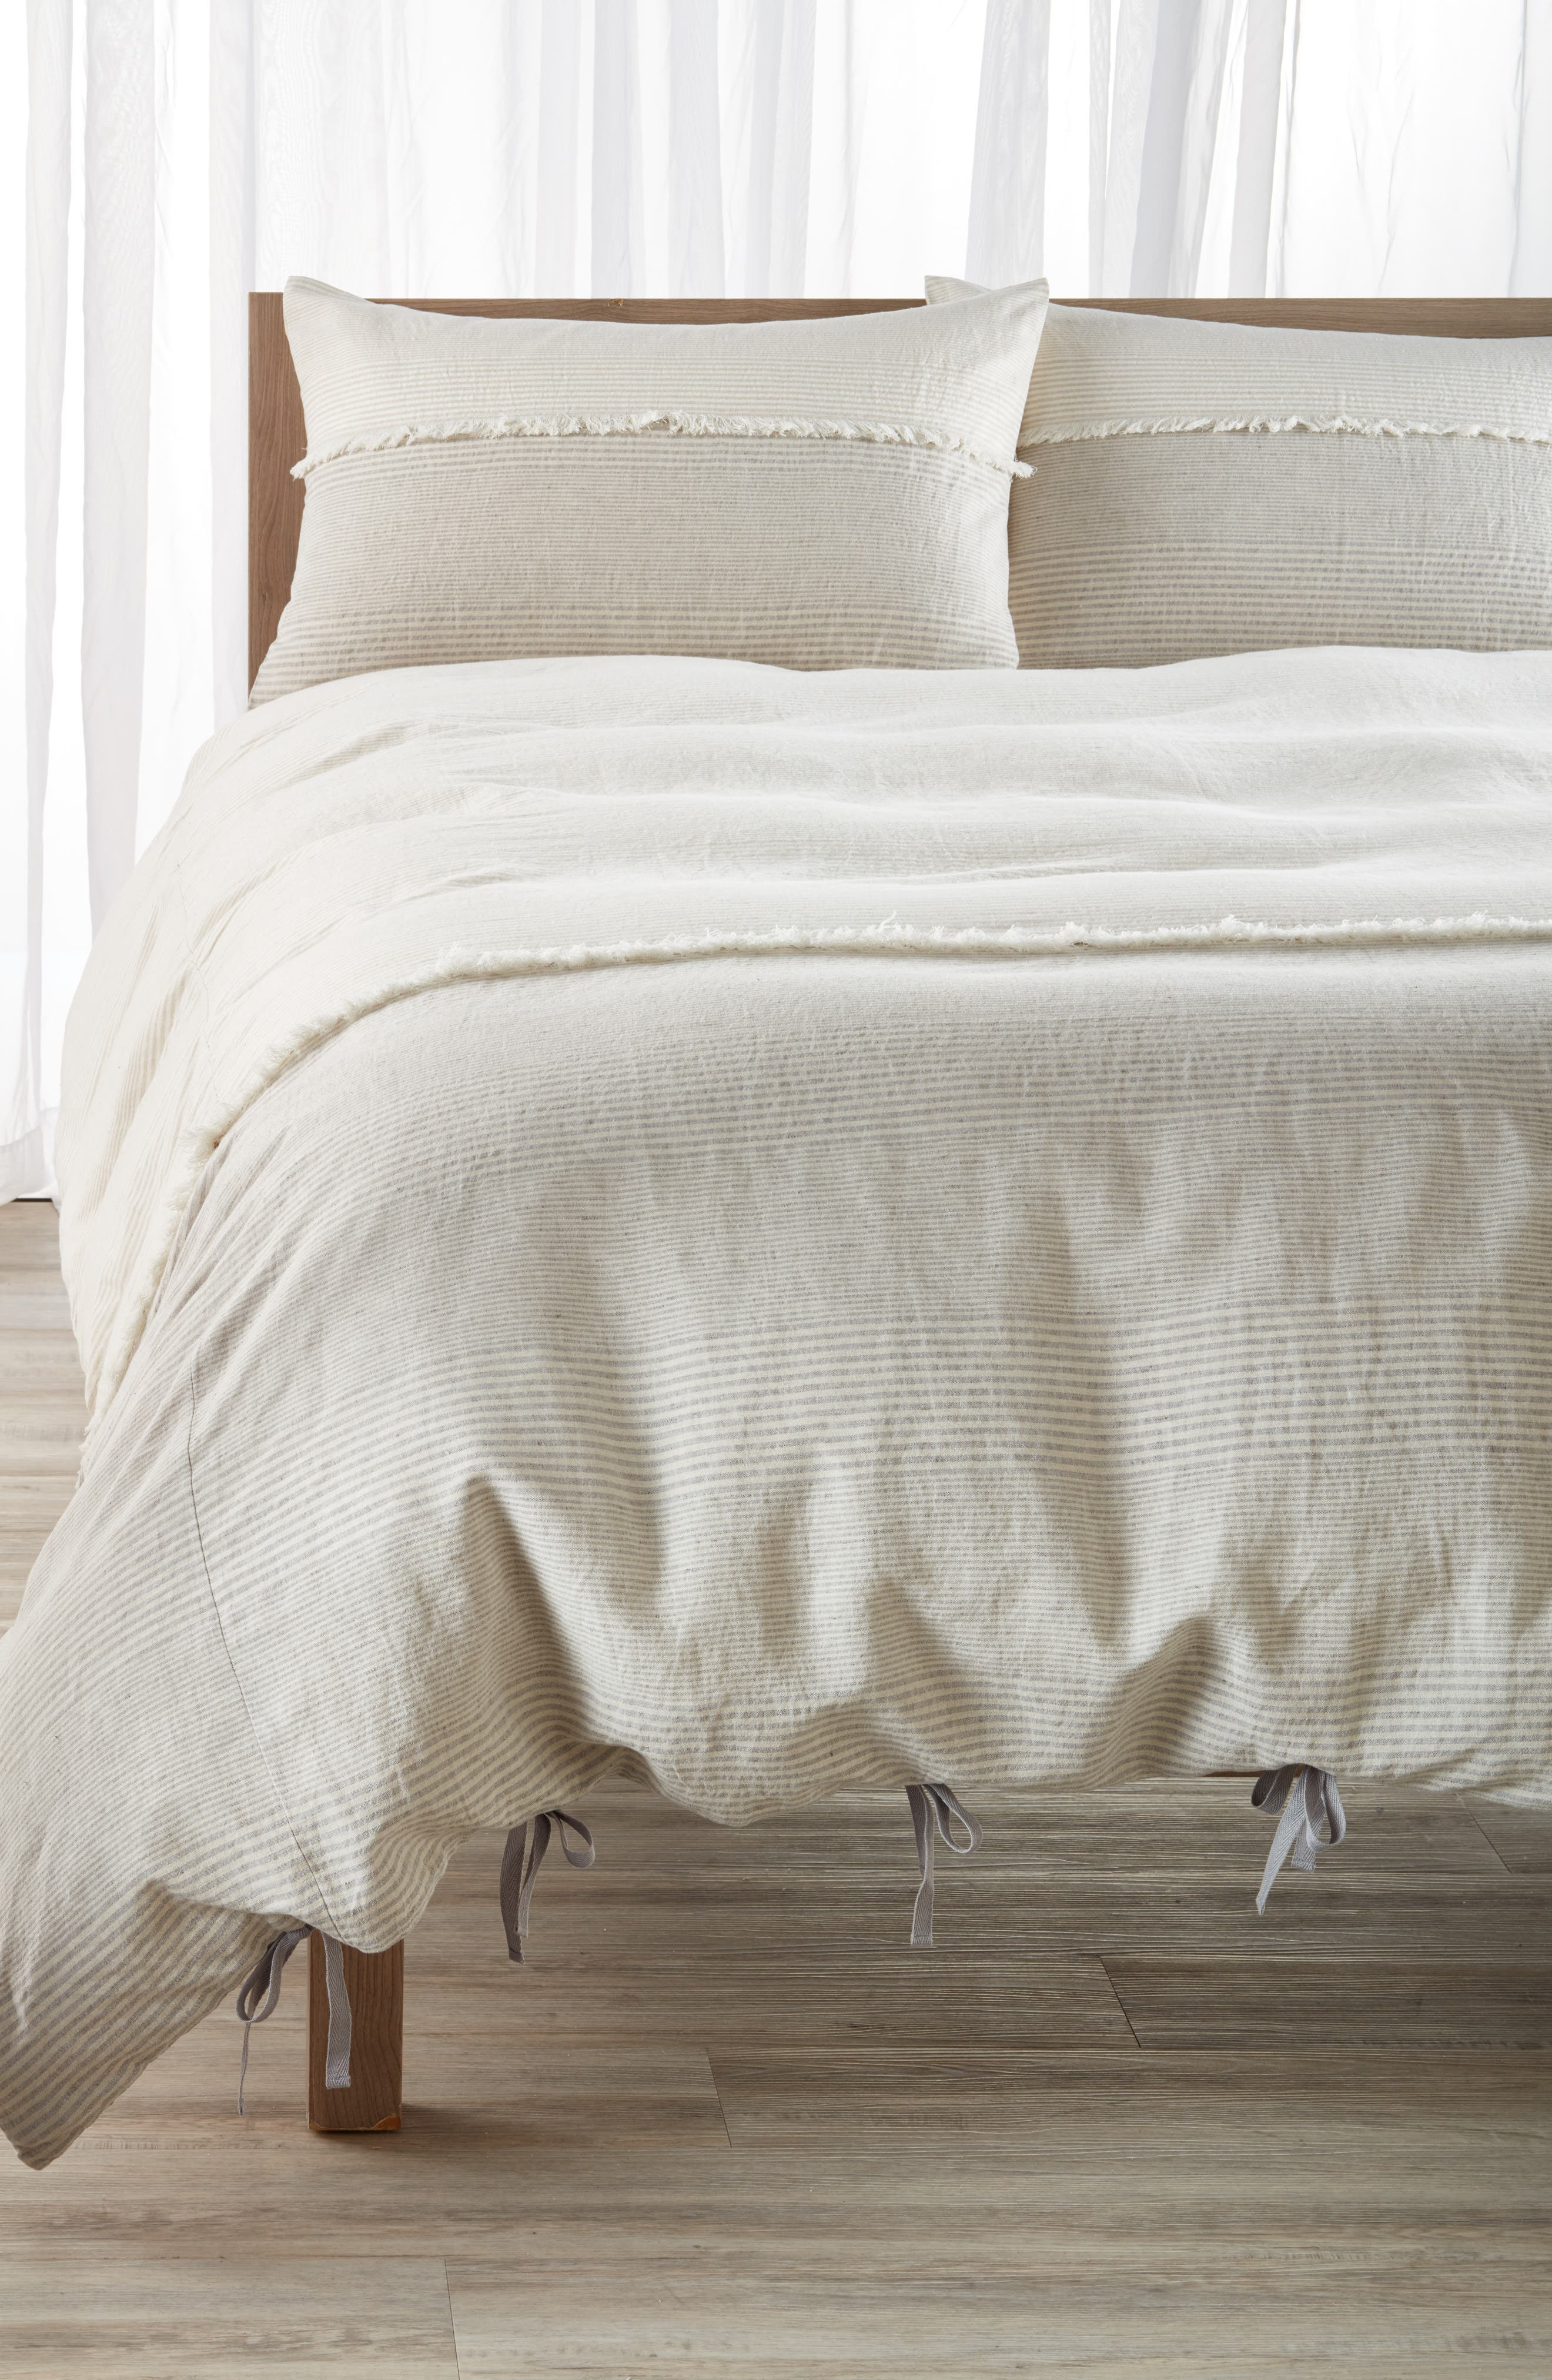 Nordstrom at Home Willa Linen & Cotton Duvet Cover